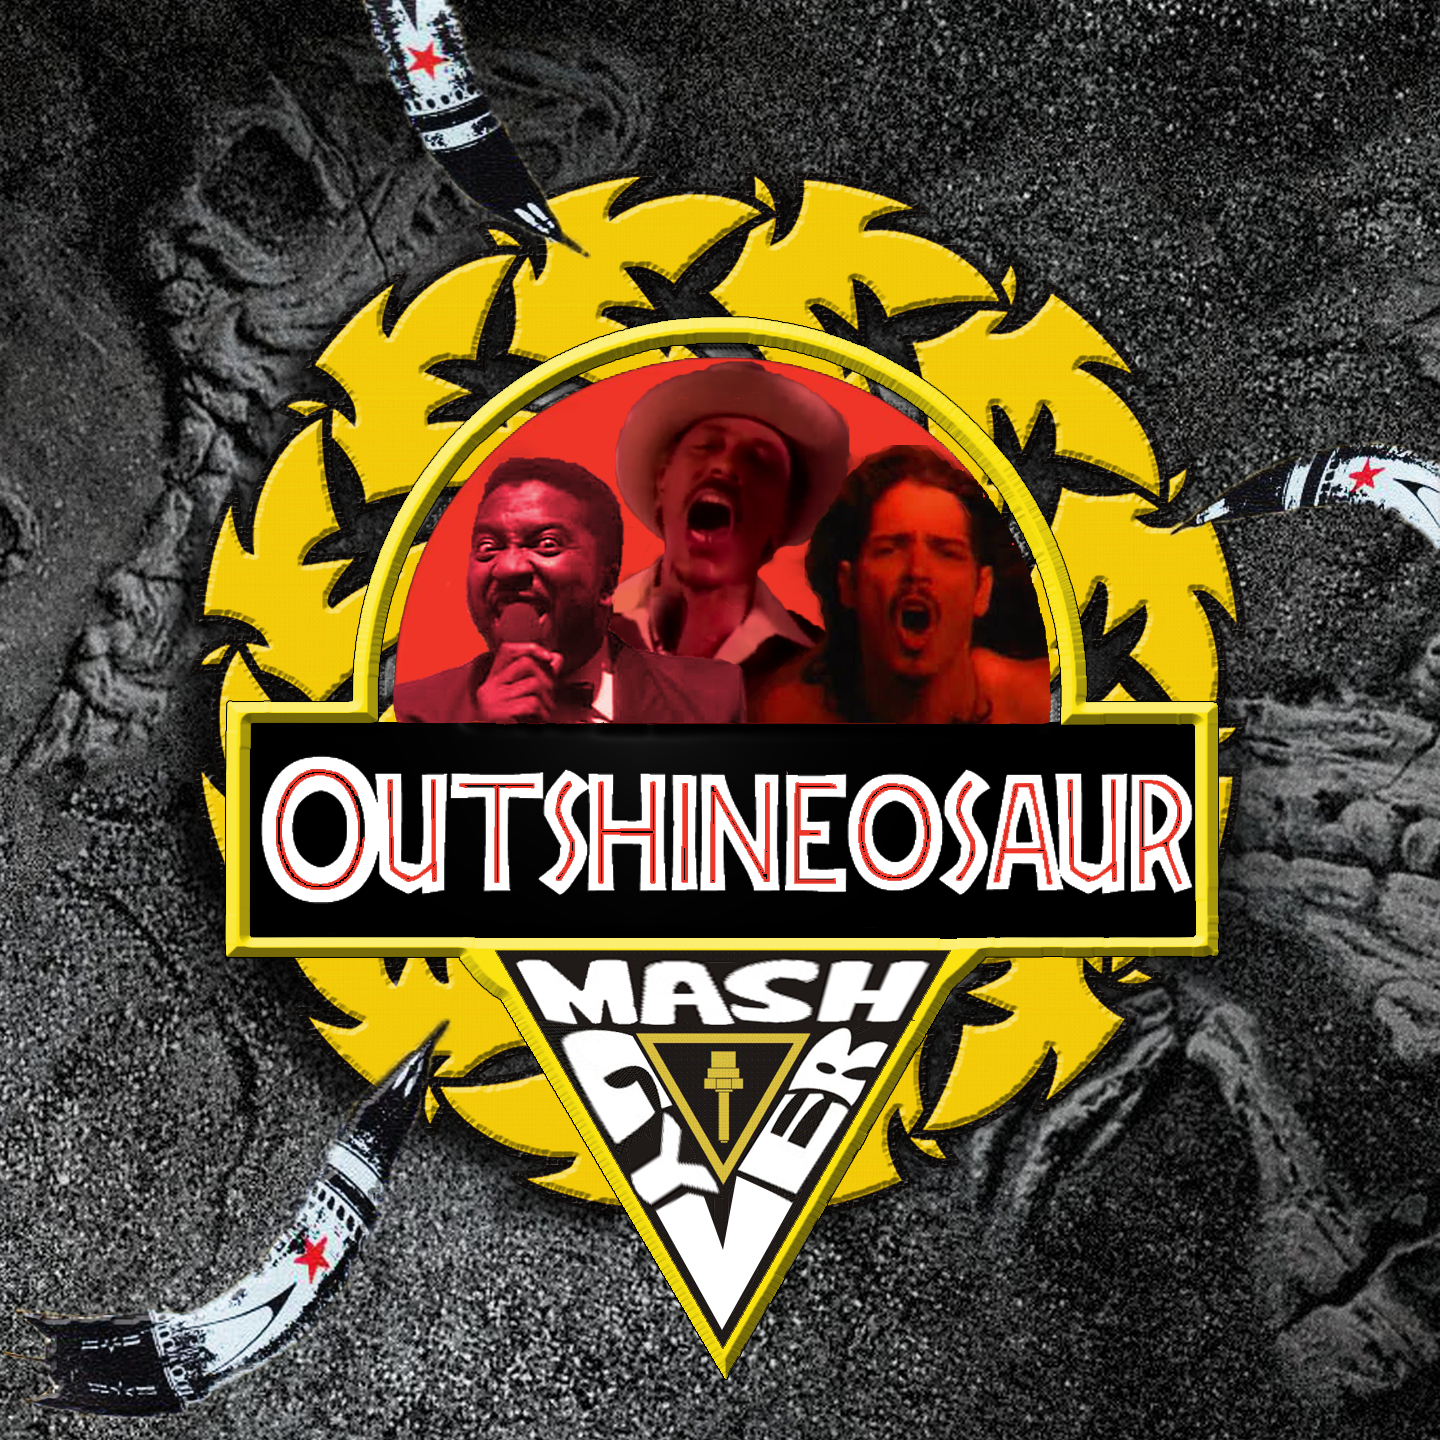 Outshineosaur (Was(Not Was) + Soundgarden) [2019]